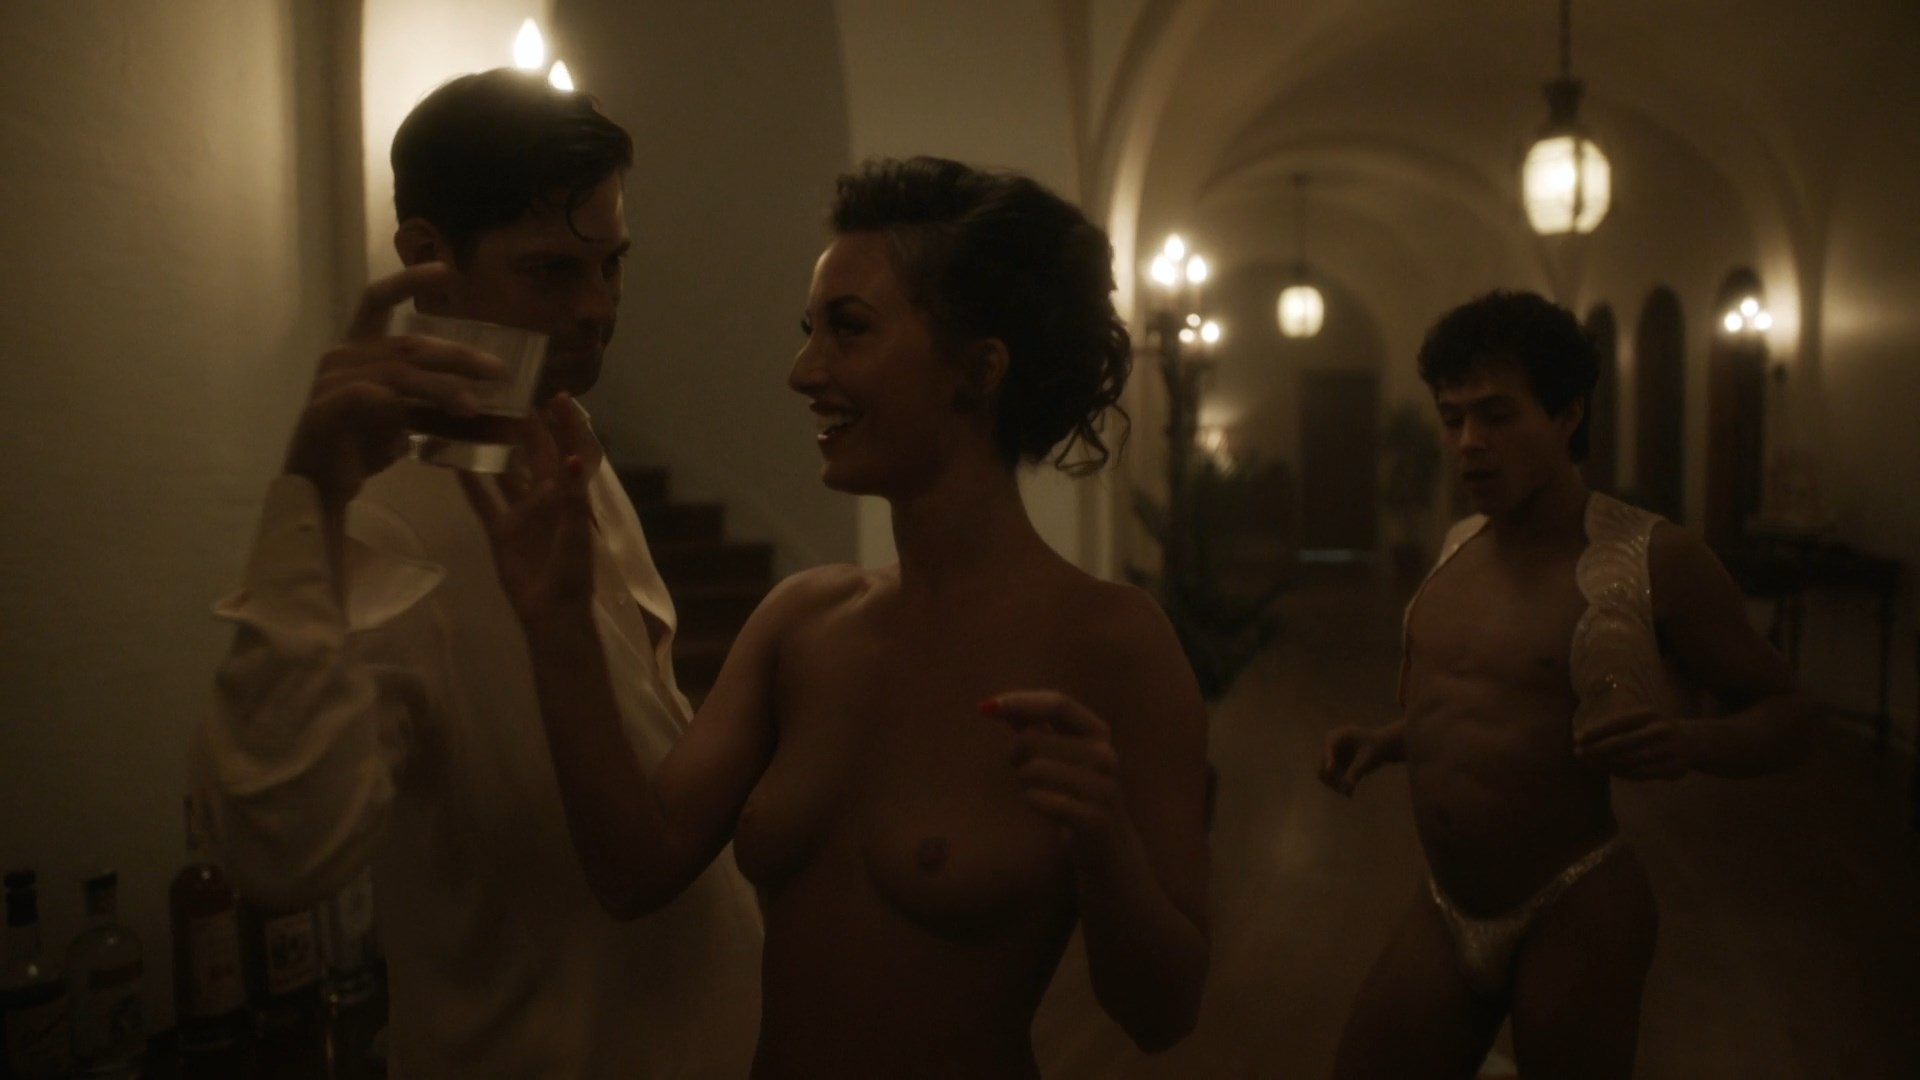 Lauren Maynard nude - The Man in the High Castle s03e05 (2018)